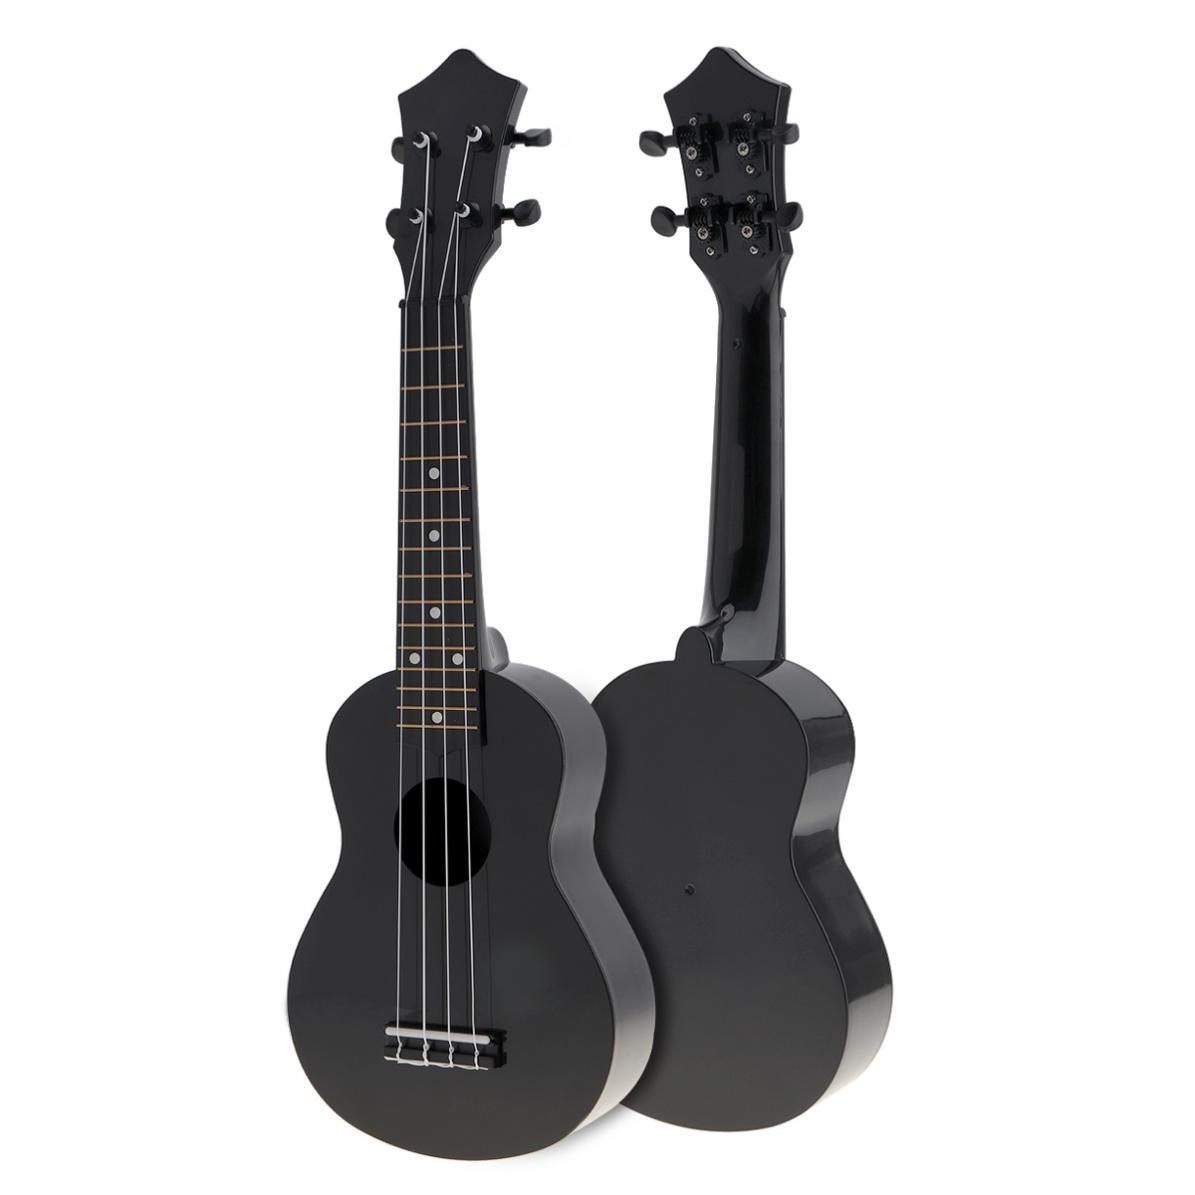 Hawaii Guitar 21 Inch Soprano Ukulele Colorful Acoustic 4 Strings  Instrument for Children and Music Beginner enlarge